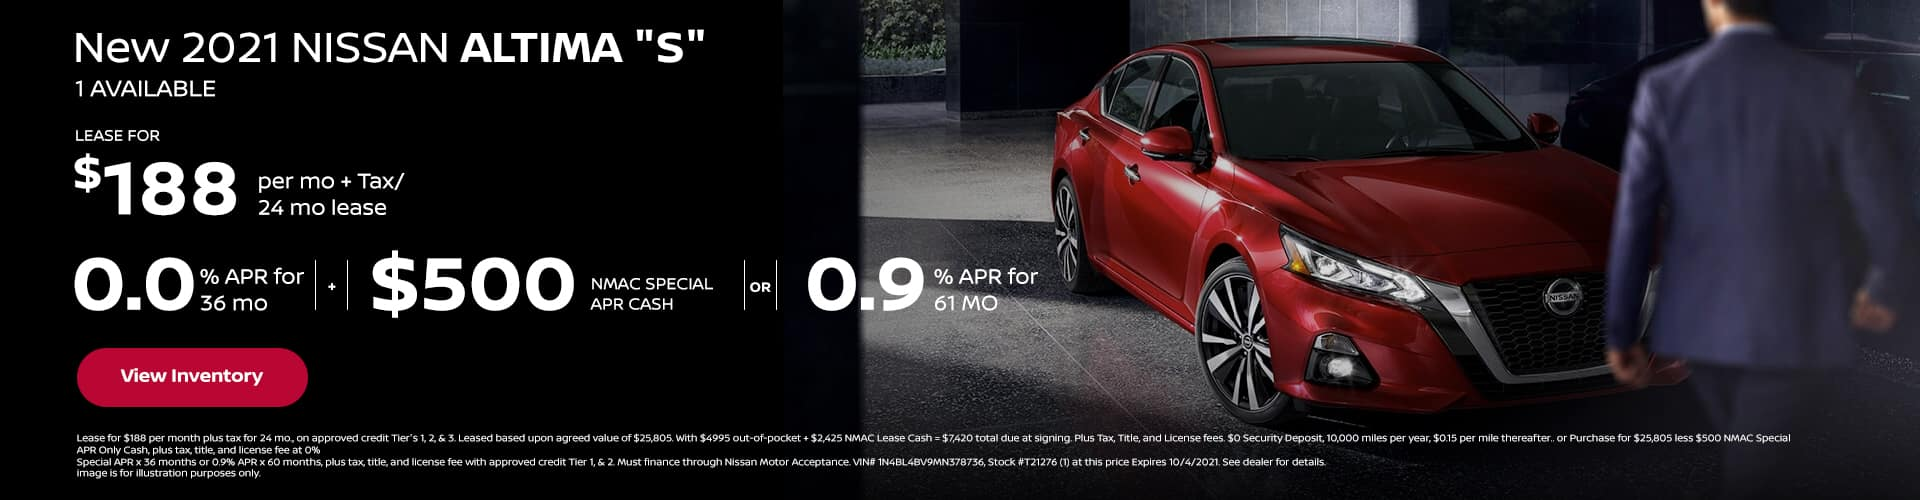 """0.0% APR x 36 mo + 500 NMAC SPECIAL APR CASH or 0.9% APR x 60 mo New 2021 Nissan ALTIMA """"S"""" (1) AVAILABLE $188 per mo. + Tax / 24 mo lease"""